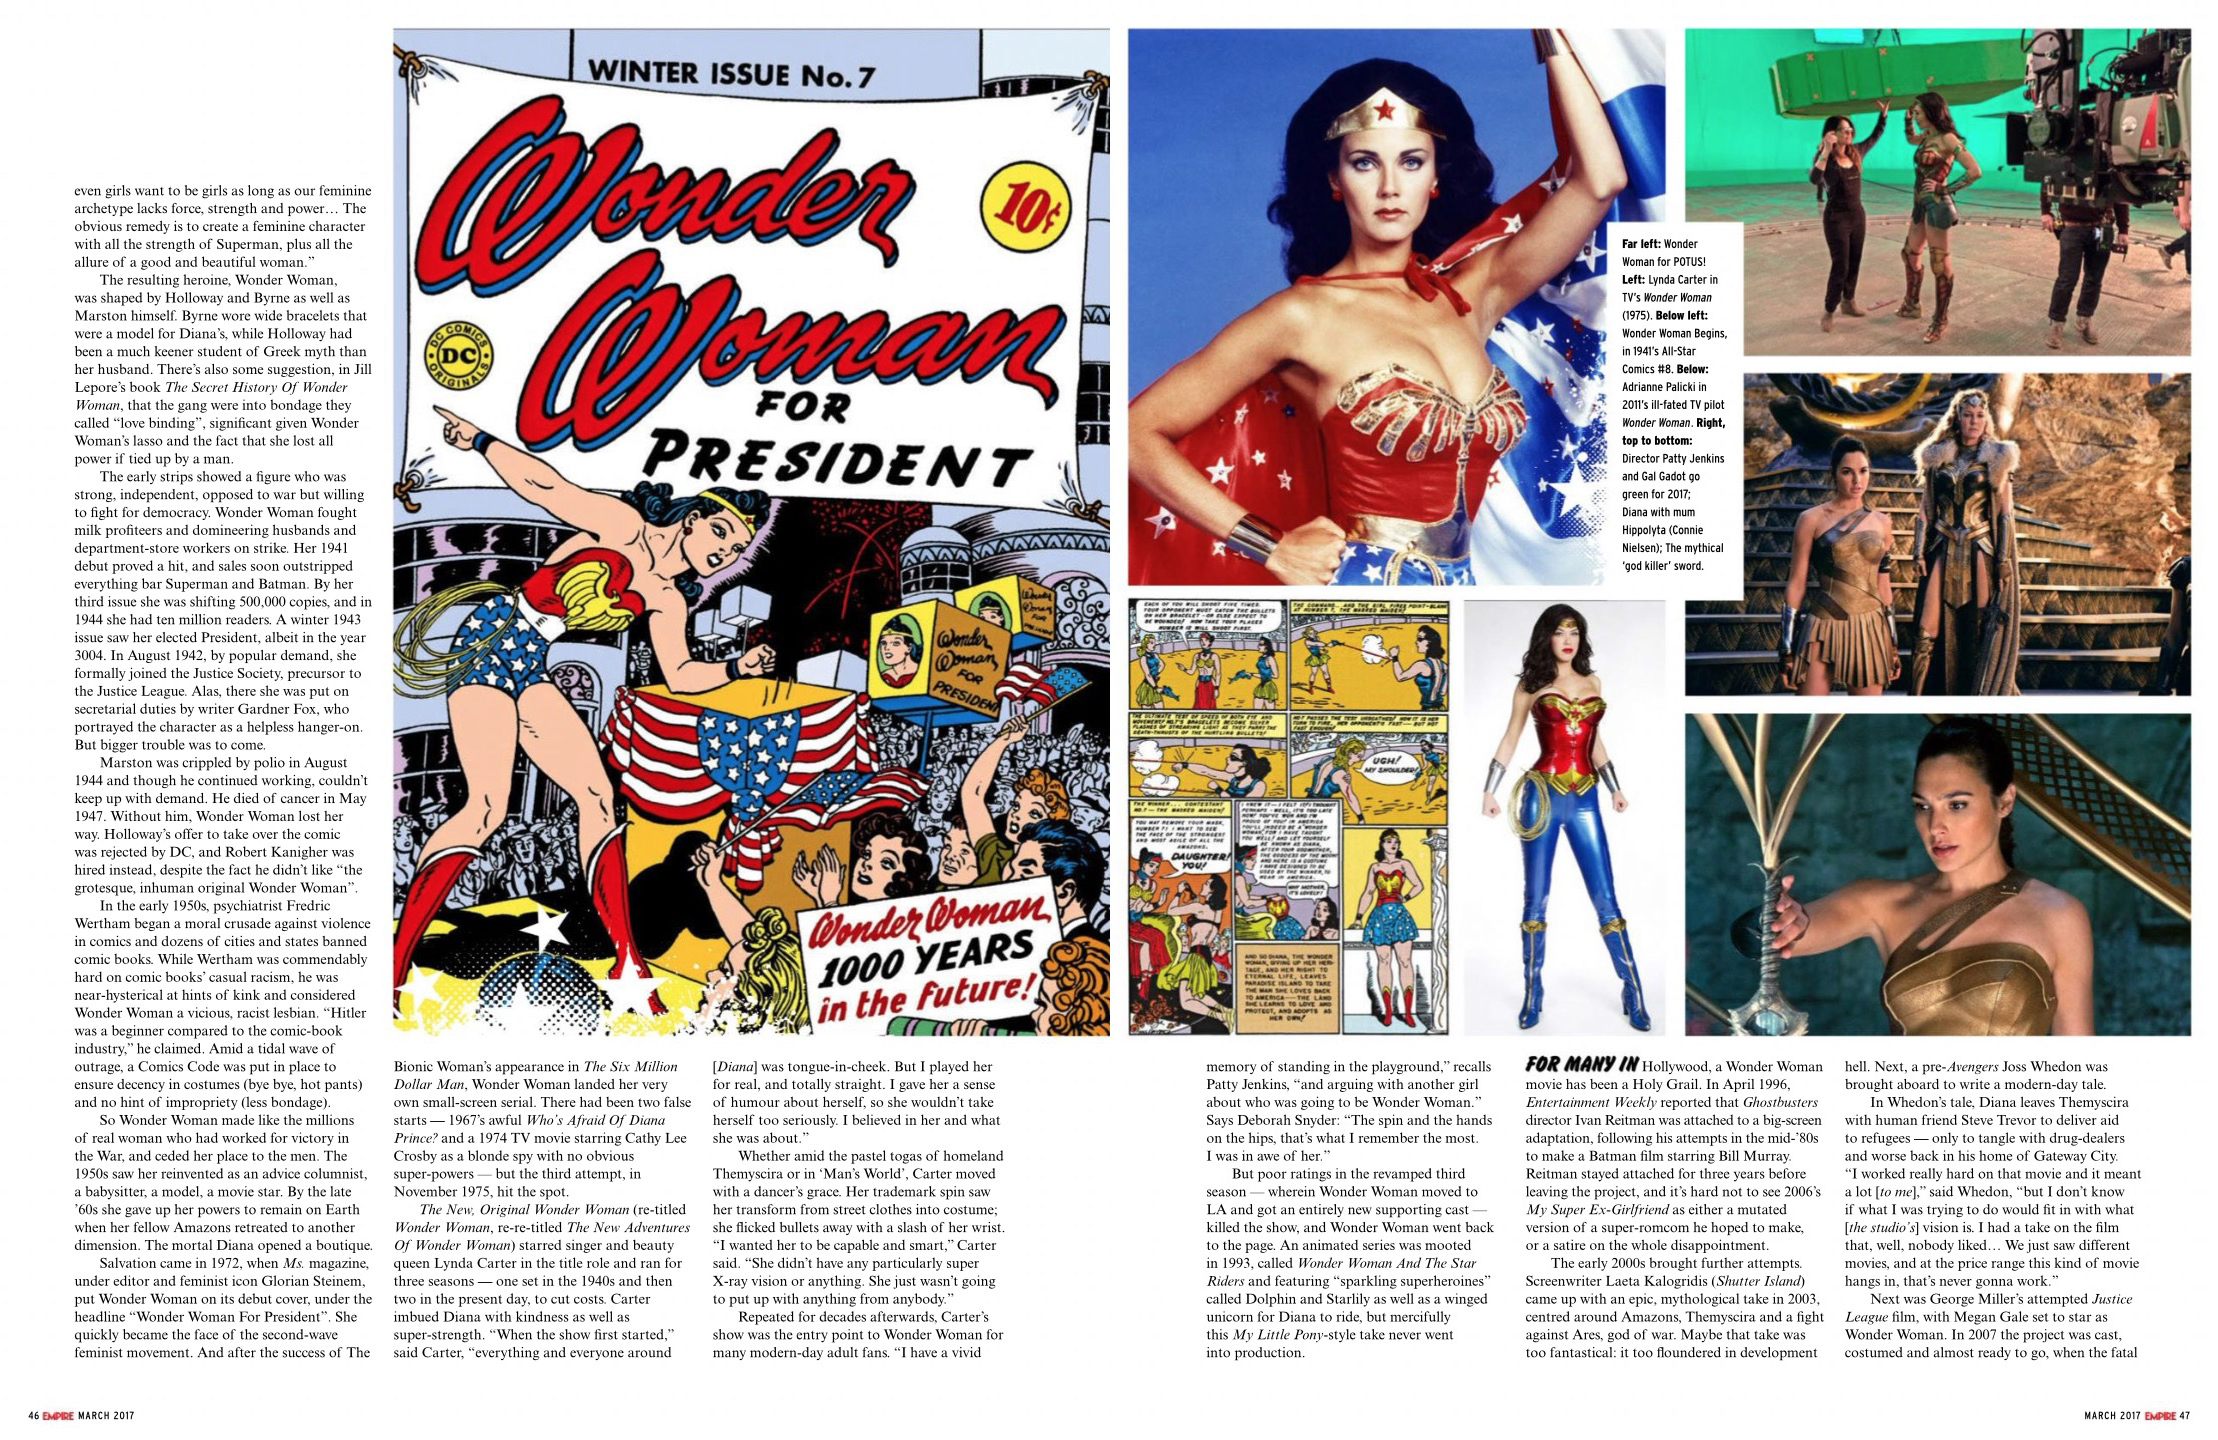 Wonder Woman feature in Empire Magazine - March 2017 [3/4]